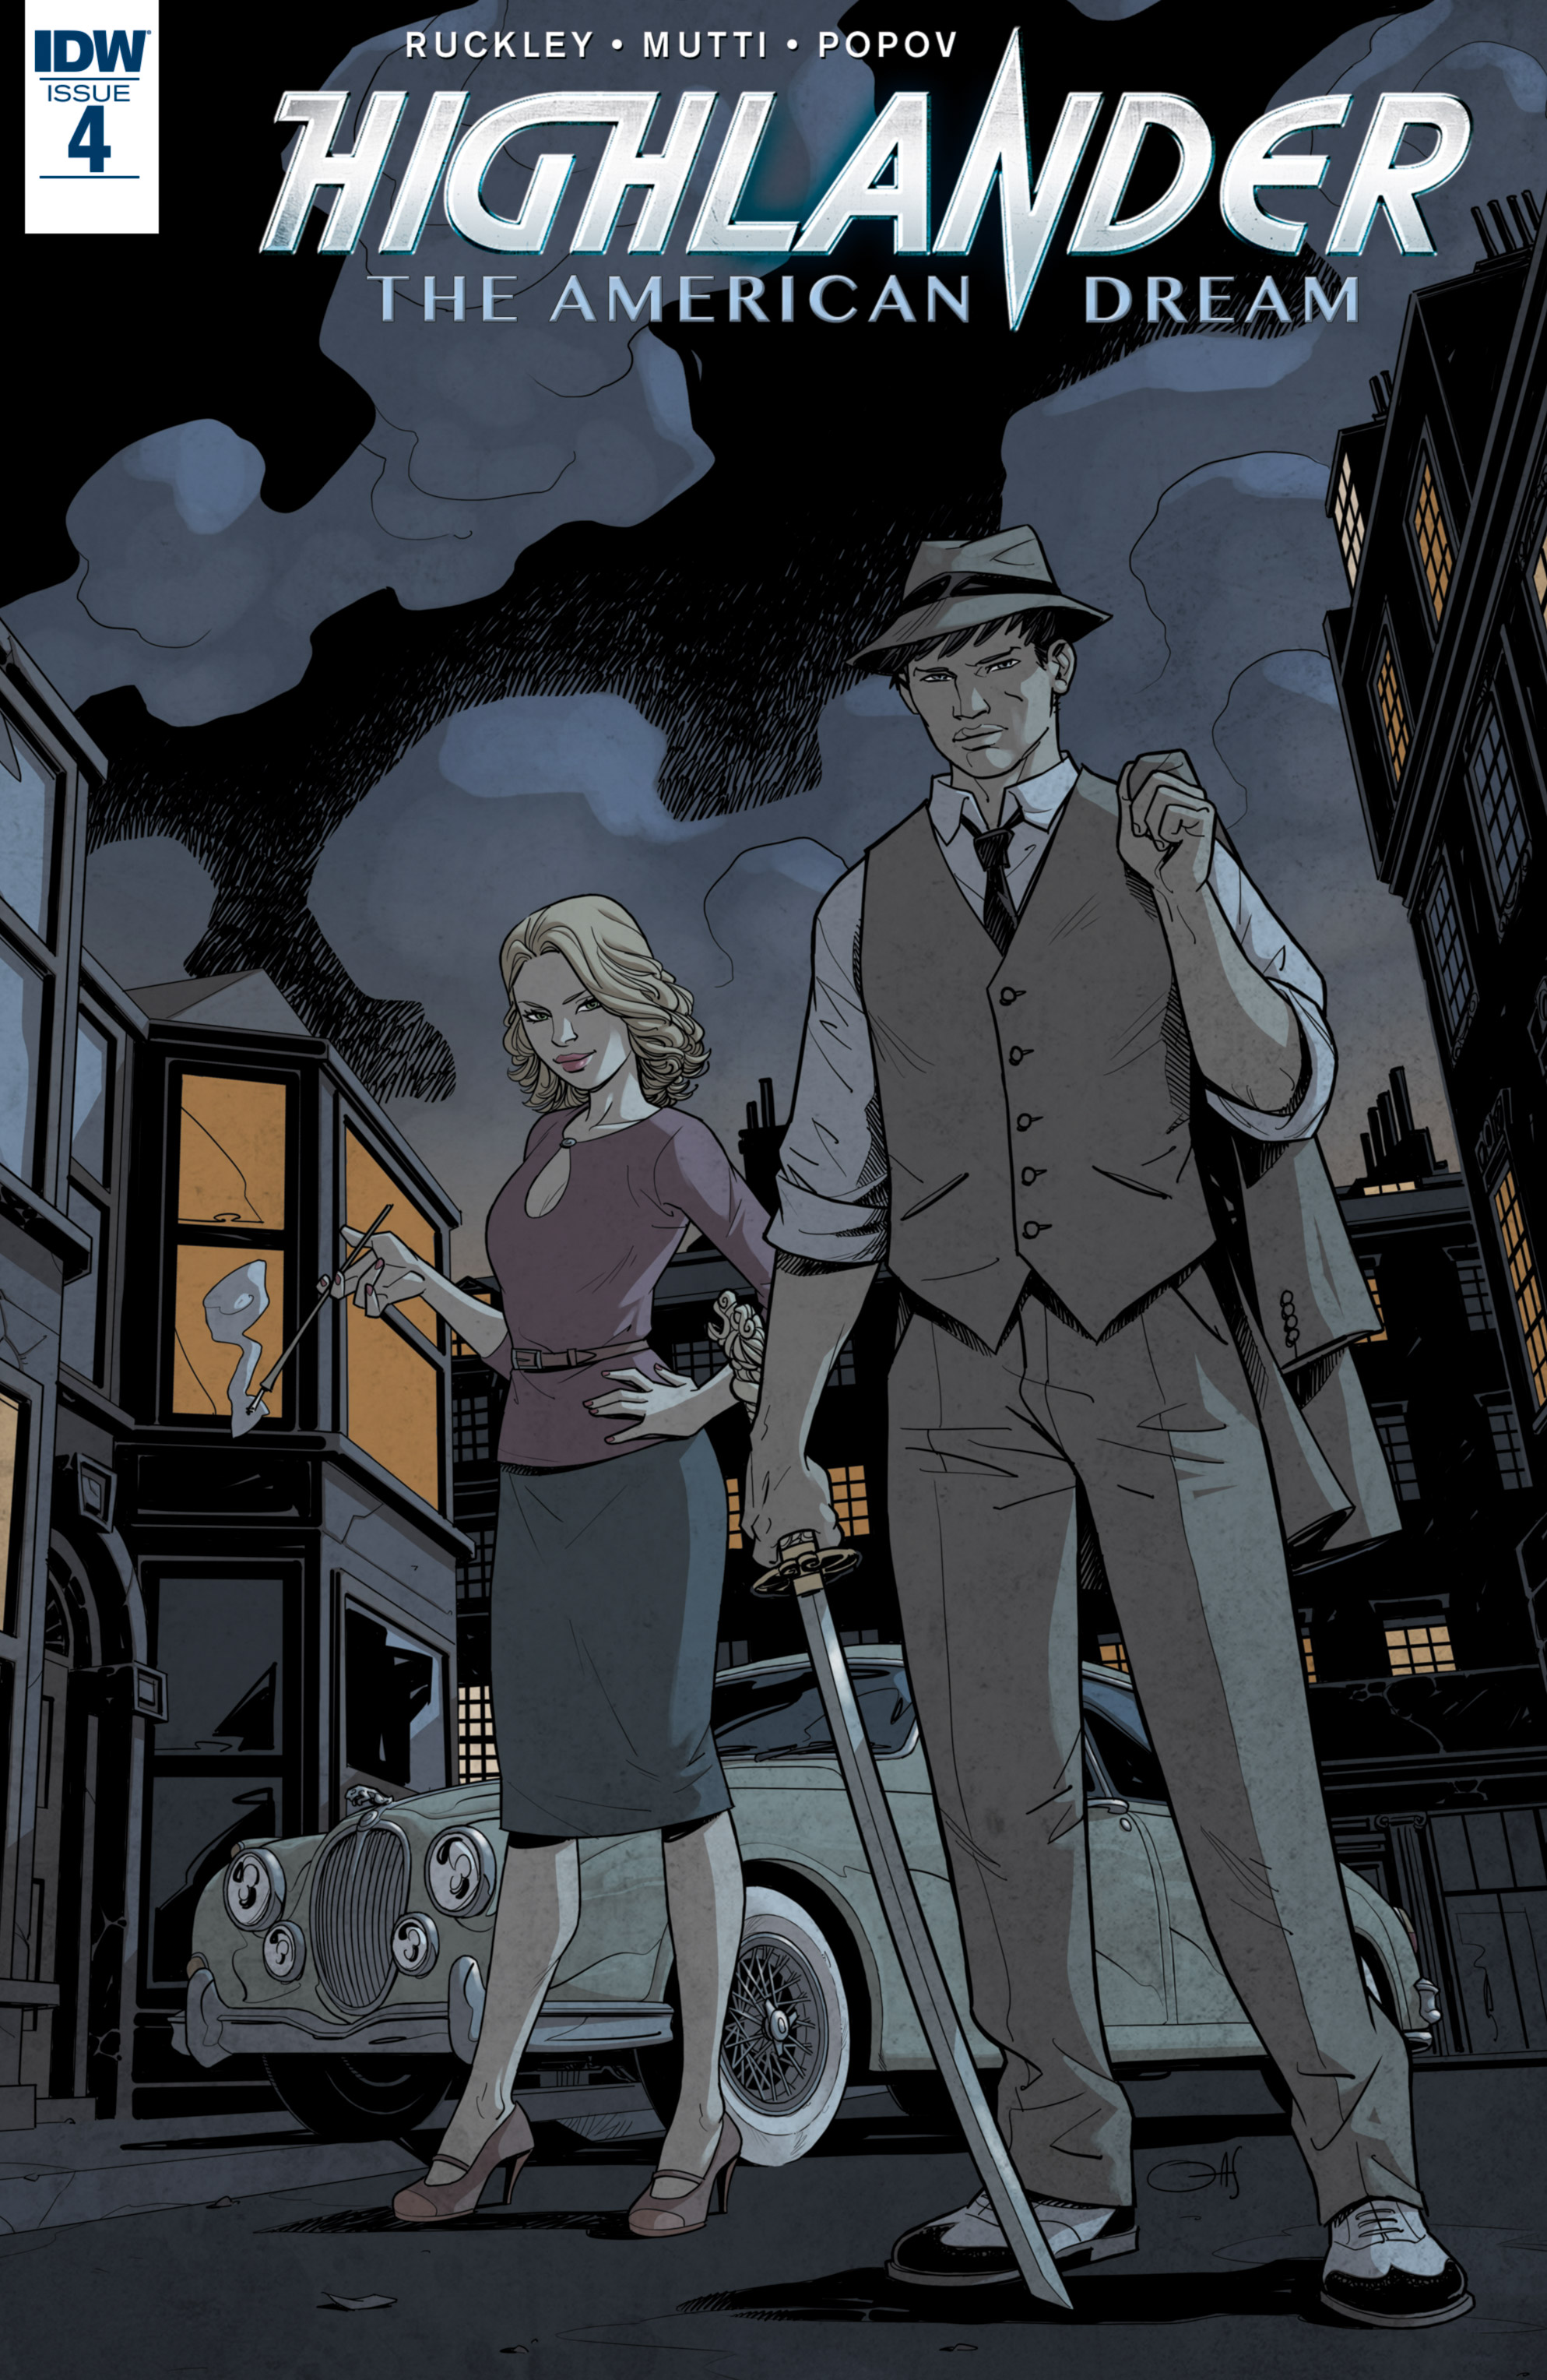 Read online Highlander: The American Dream comic -  Issue #4 - 1